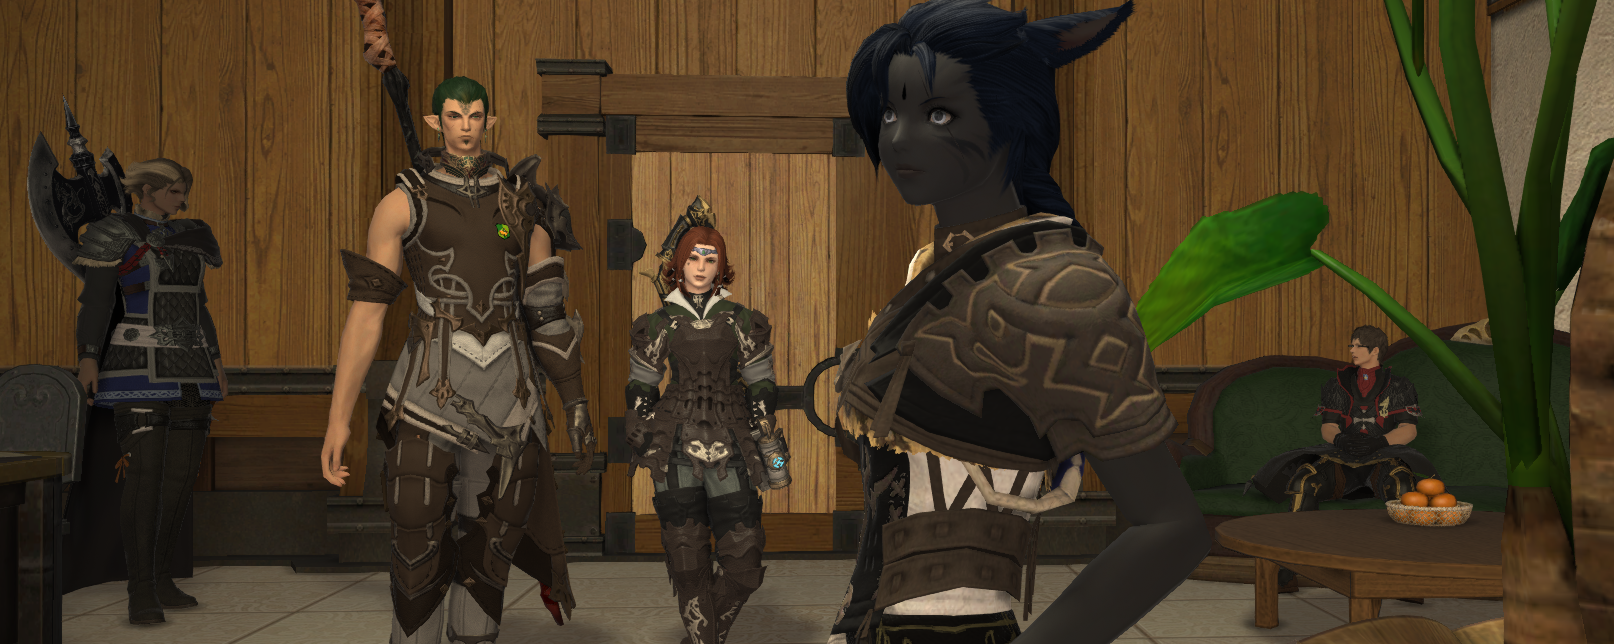 Une chasse particulière Δ Off ; Nathael Greystone 253884ffxiv02102016175259